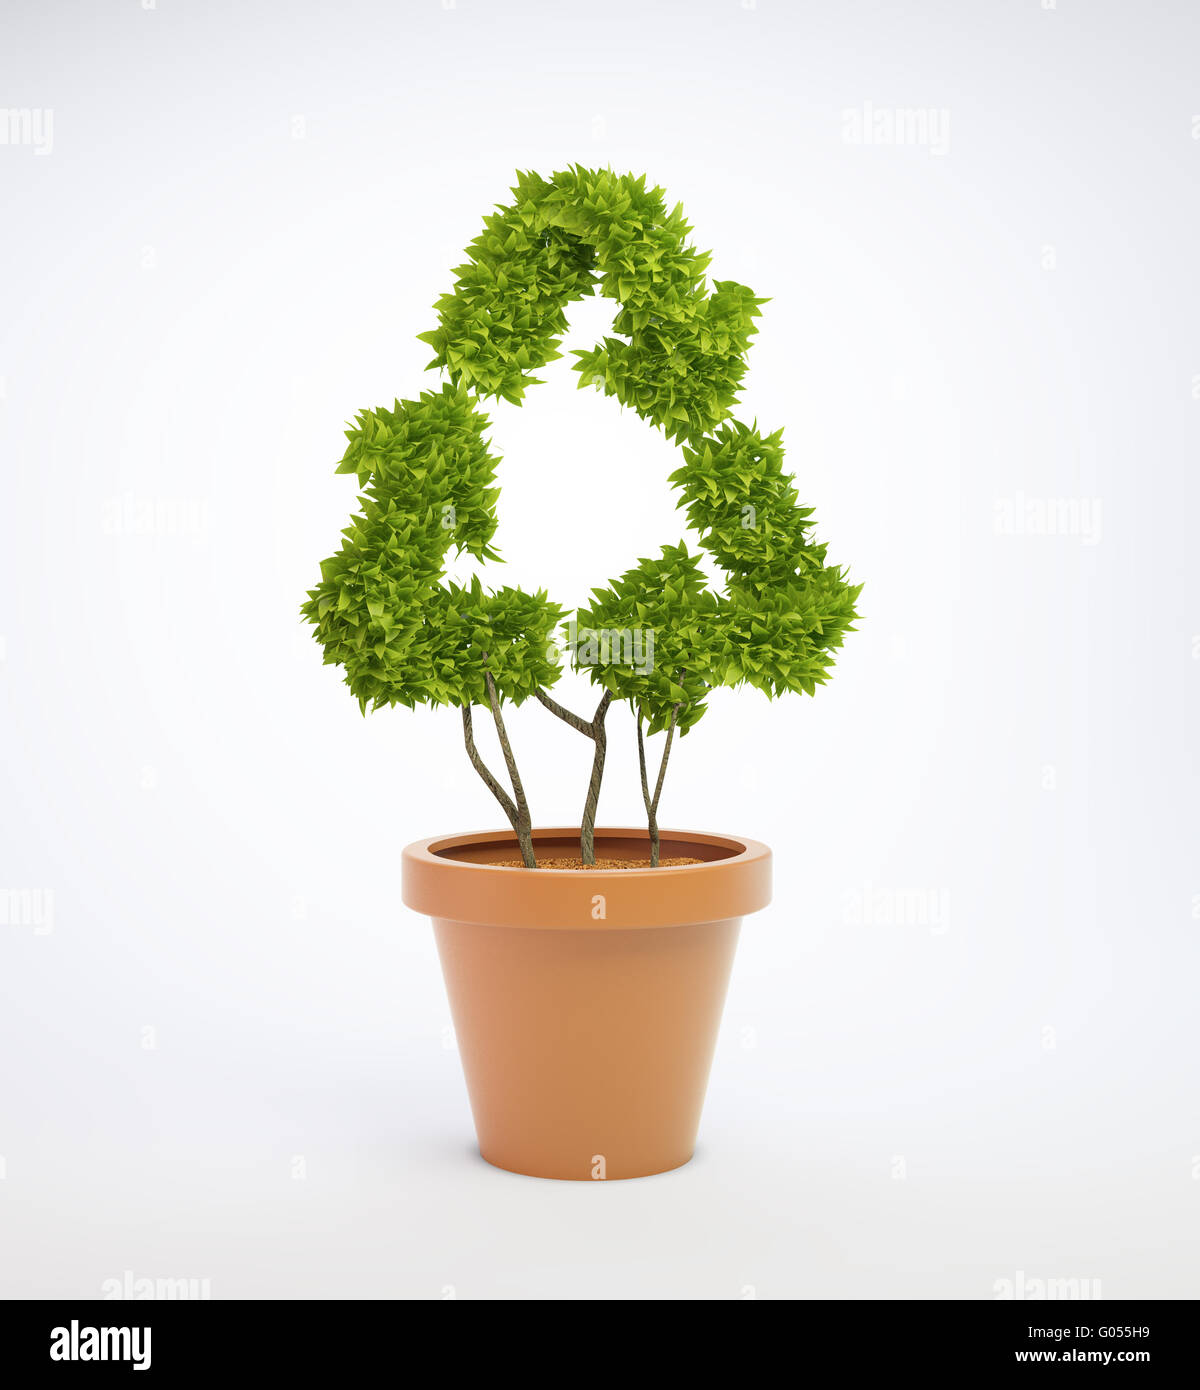 plant in a pot shaped like a recycling symbol - Stock Image